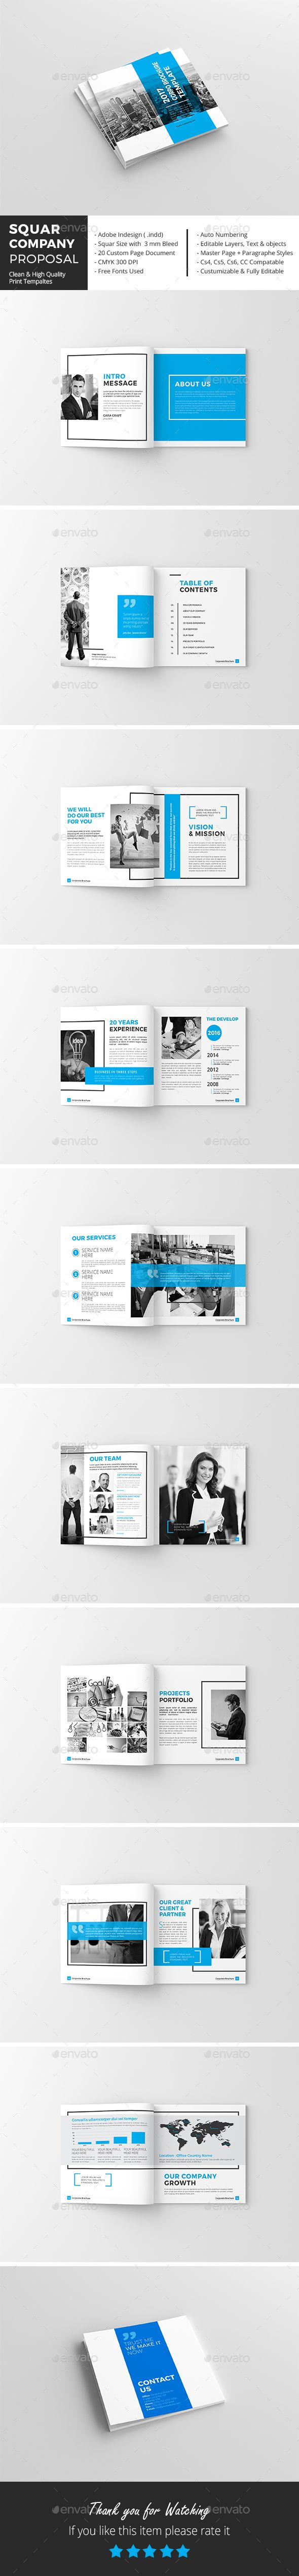 Squar Company #Proposal Template - Corporate #Brochures Download here: https://graphicriver.net/item/squar-company-proposal-template/19576719?ref=alena994